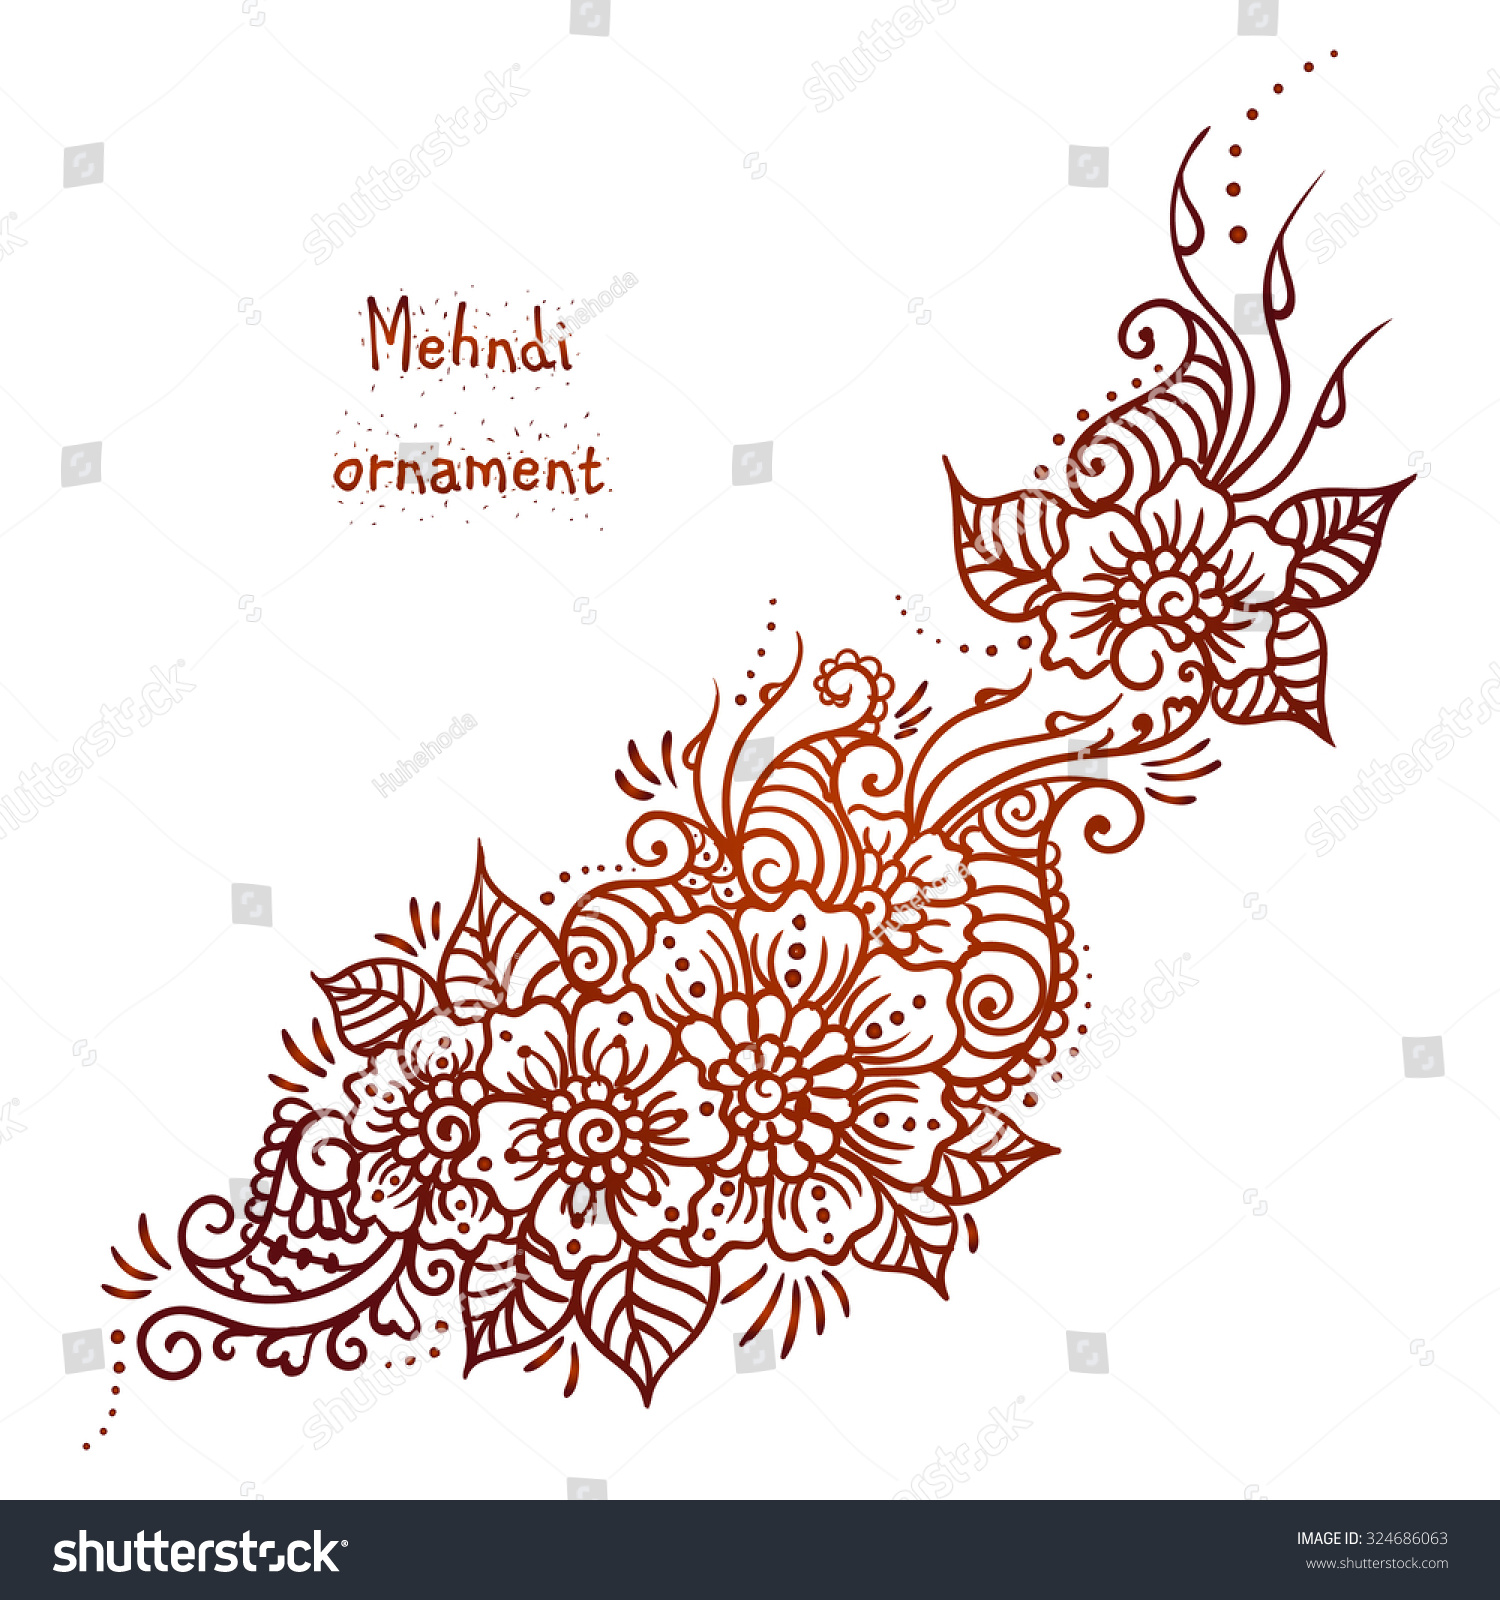 Mehndi Hand Outline : Vector ethnic mehndi pattern template stock